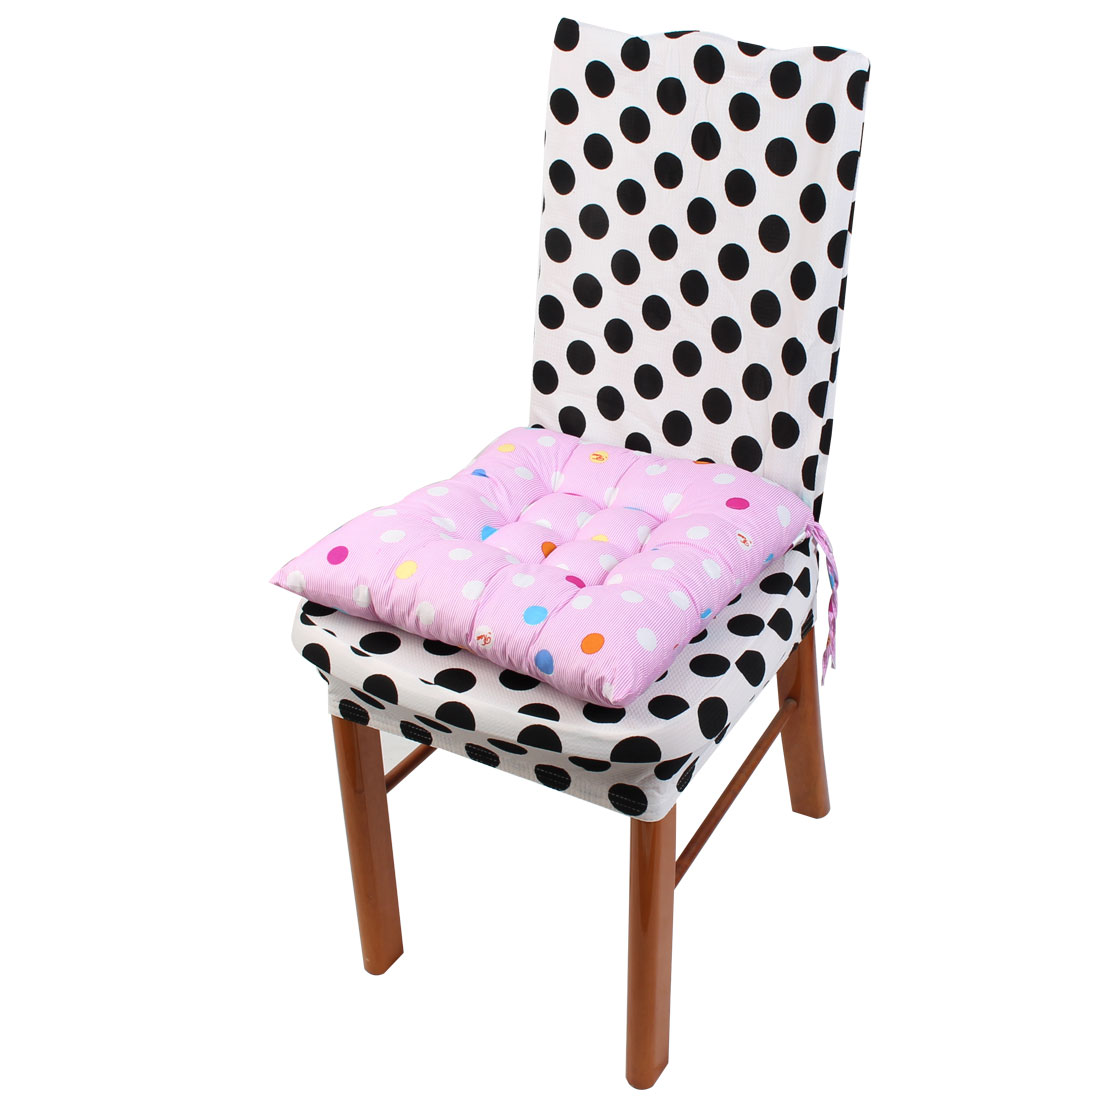 Household Office Polyester Dots Print Keeping Warm Chair Cushion Pad Light Pink 40 x 40cm